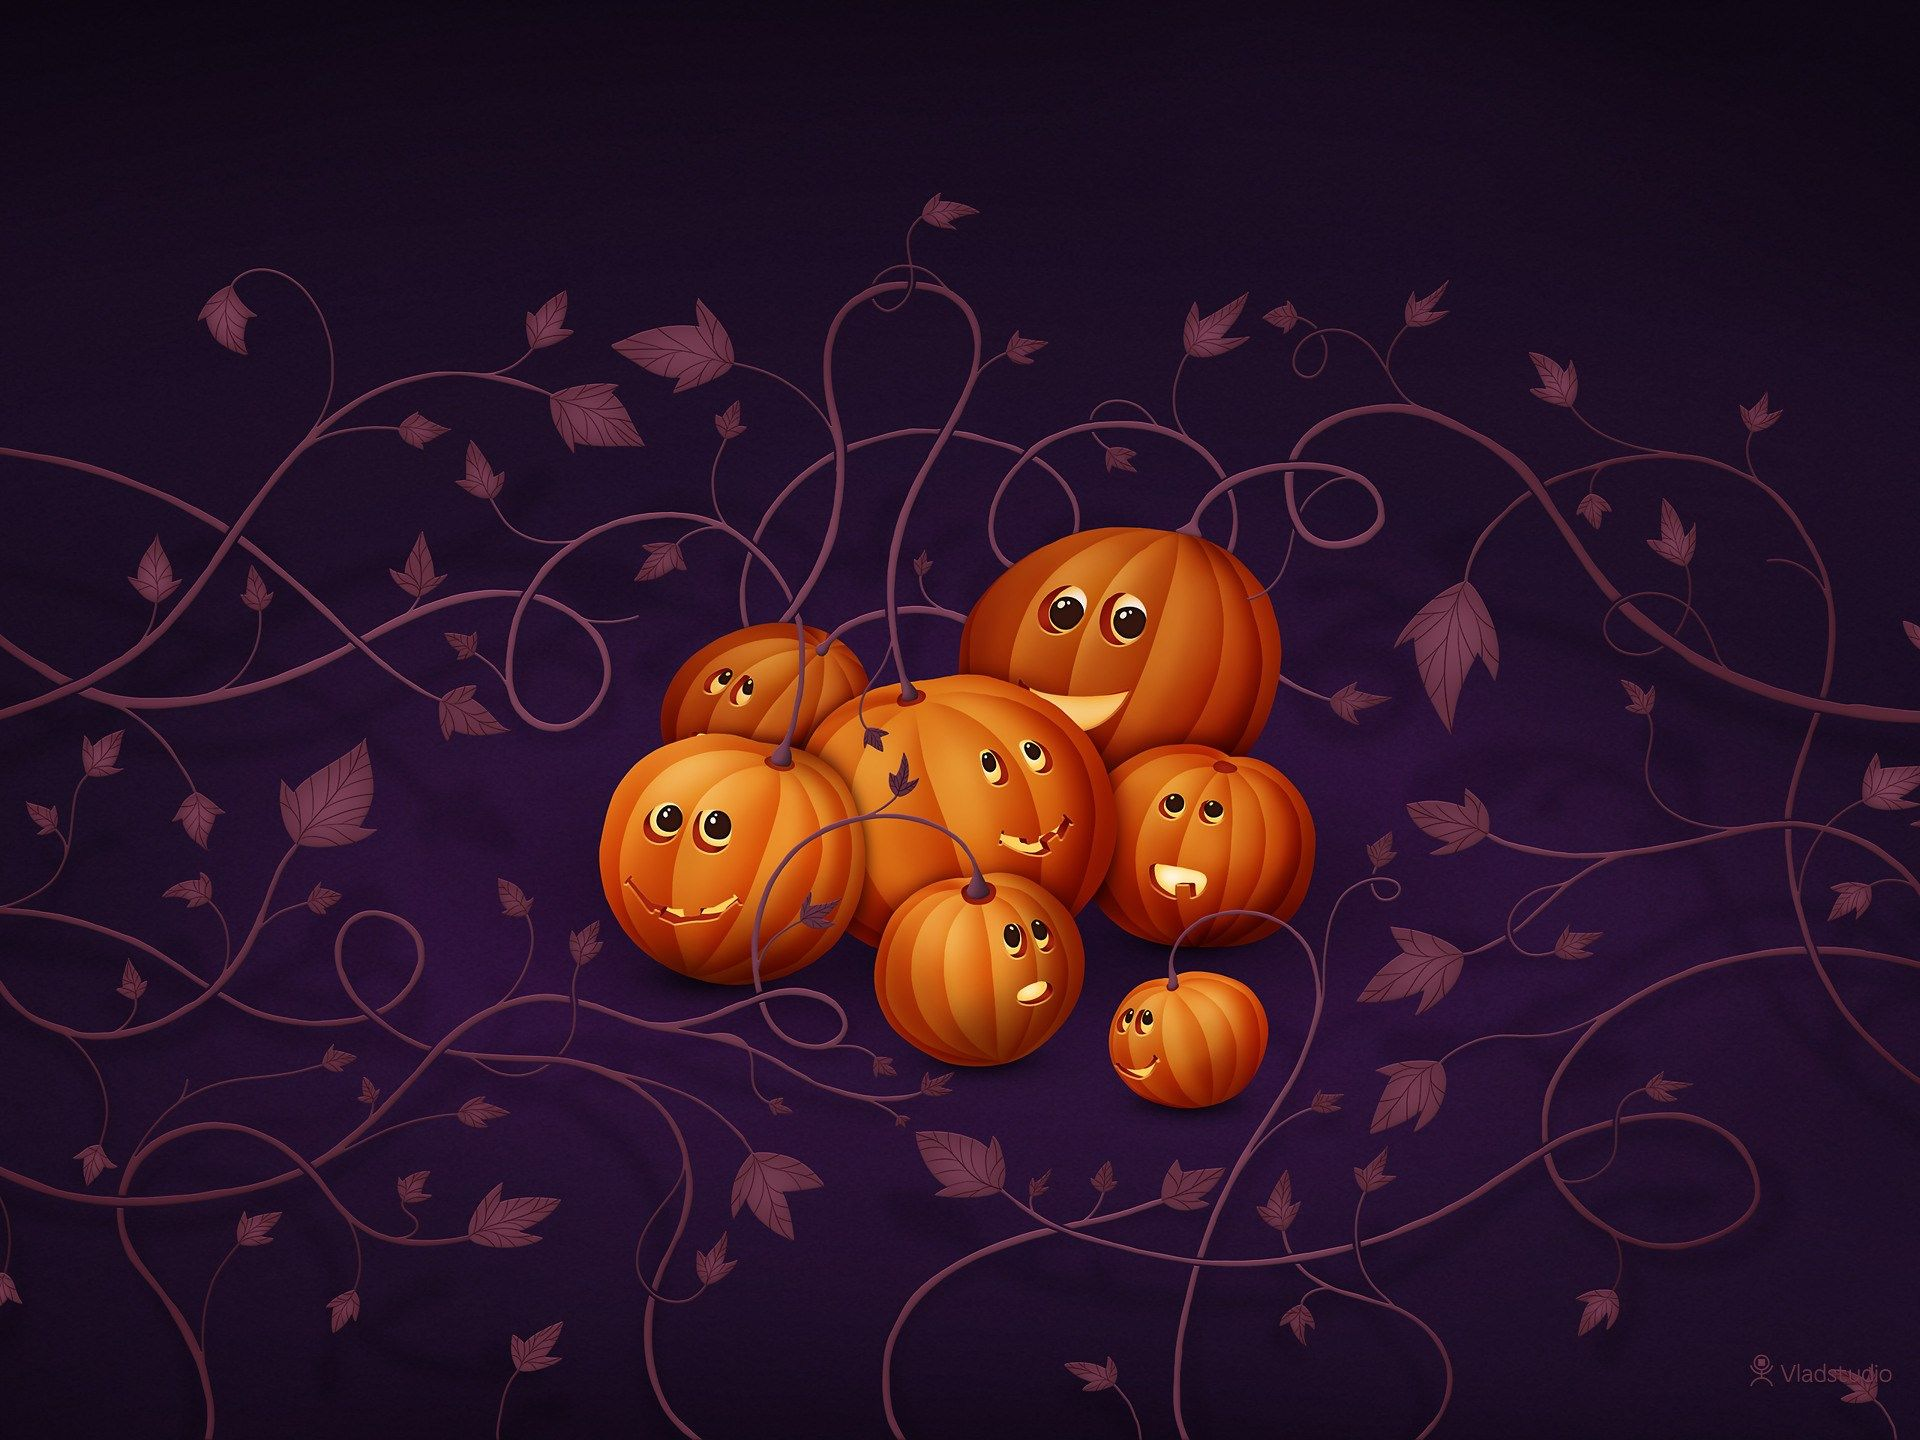 69+] Free Halloween Computer Wallpaper Backgrounds on